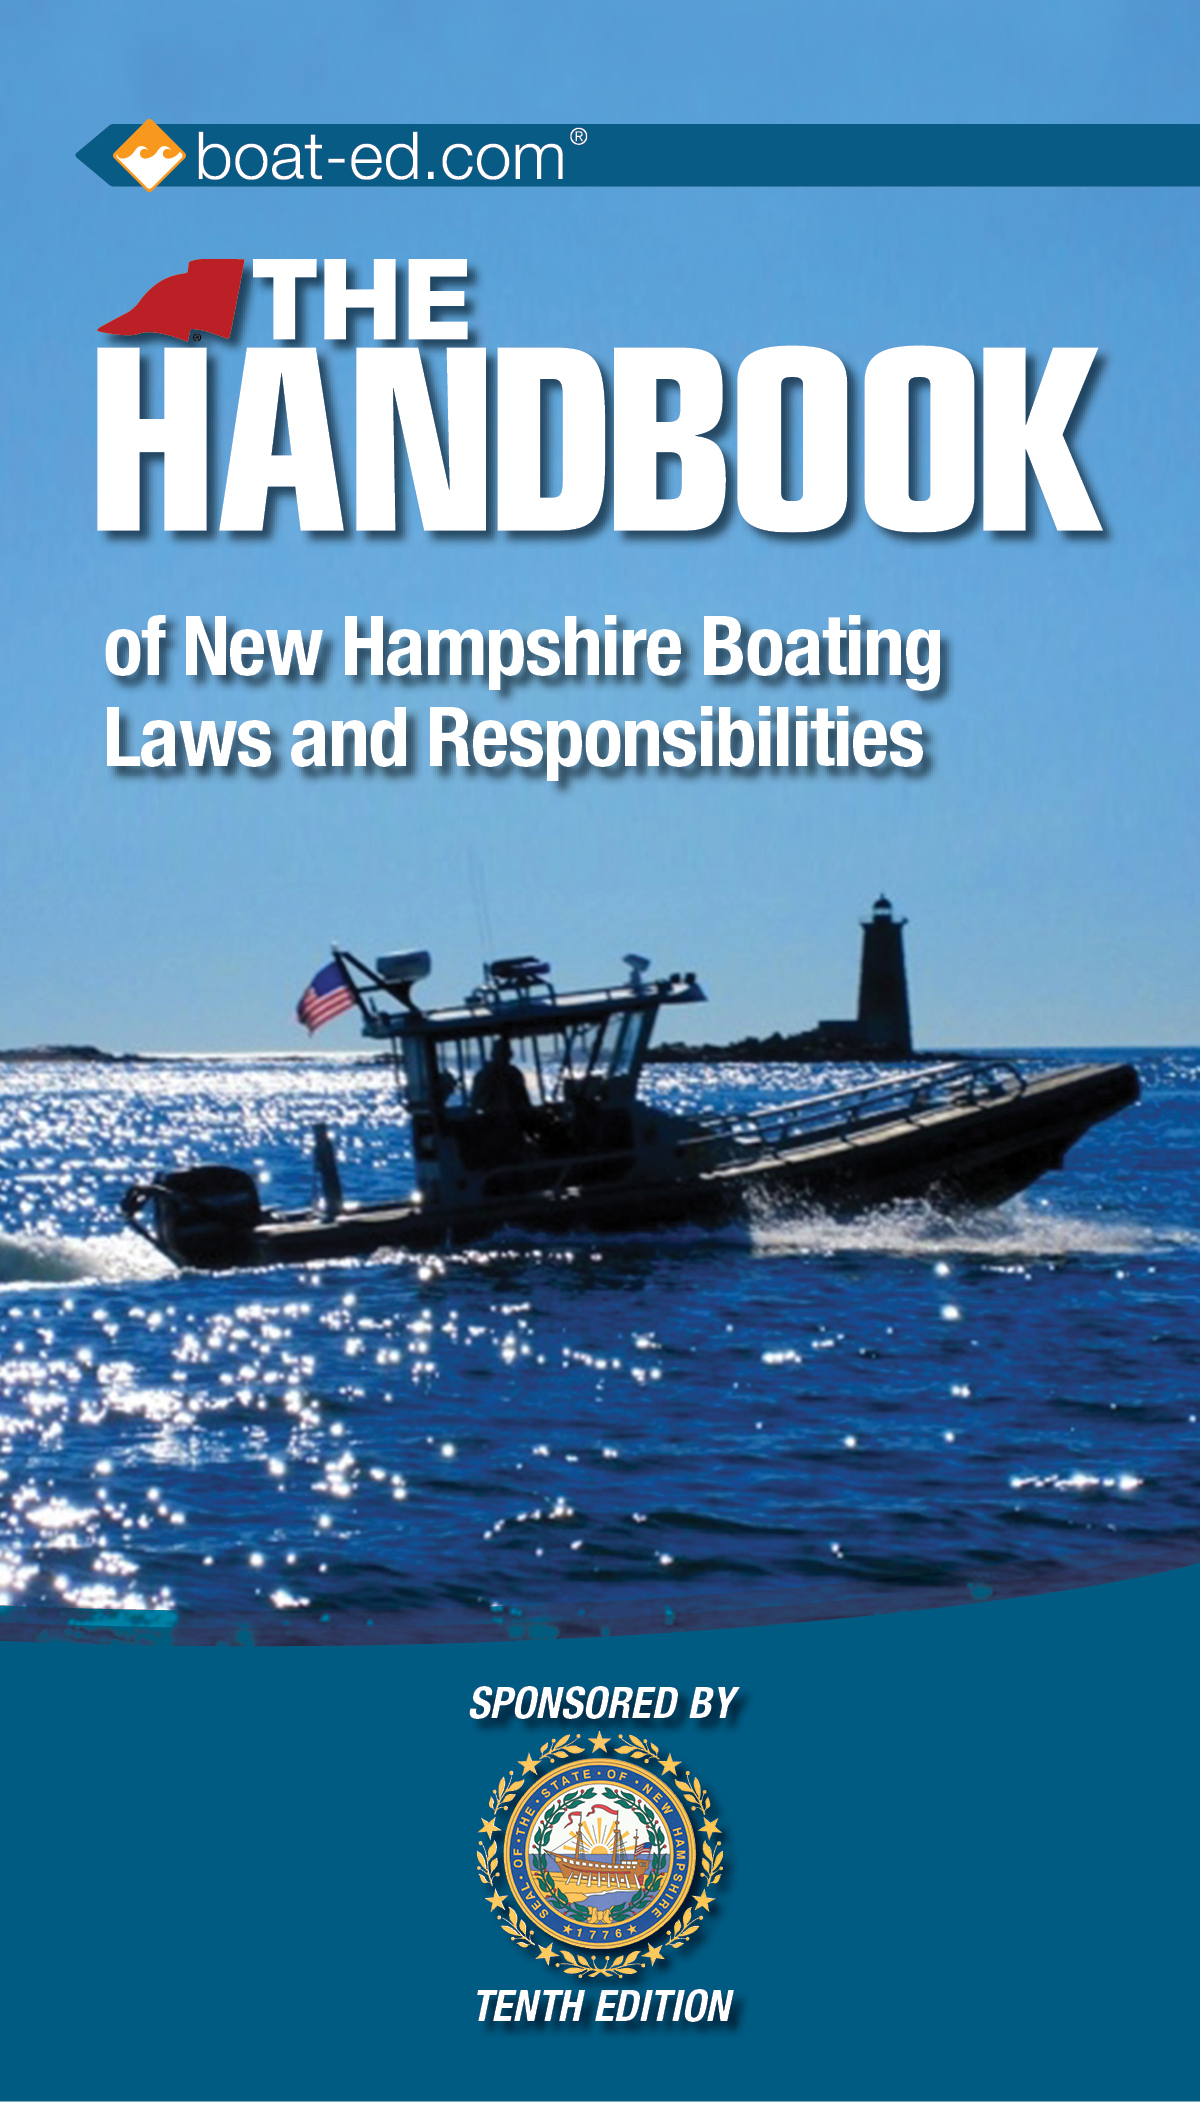 New Hampshire Boating handbook